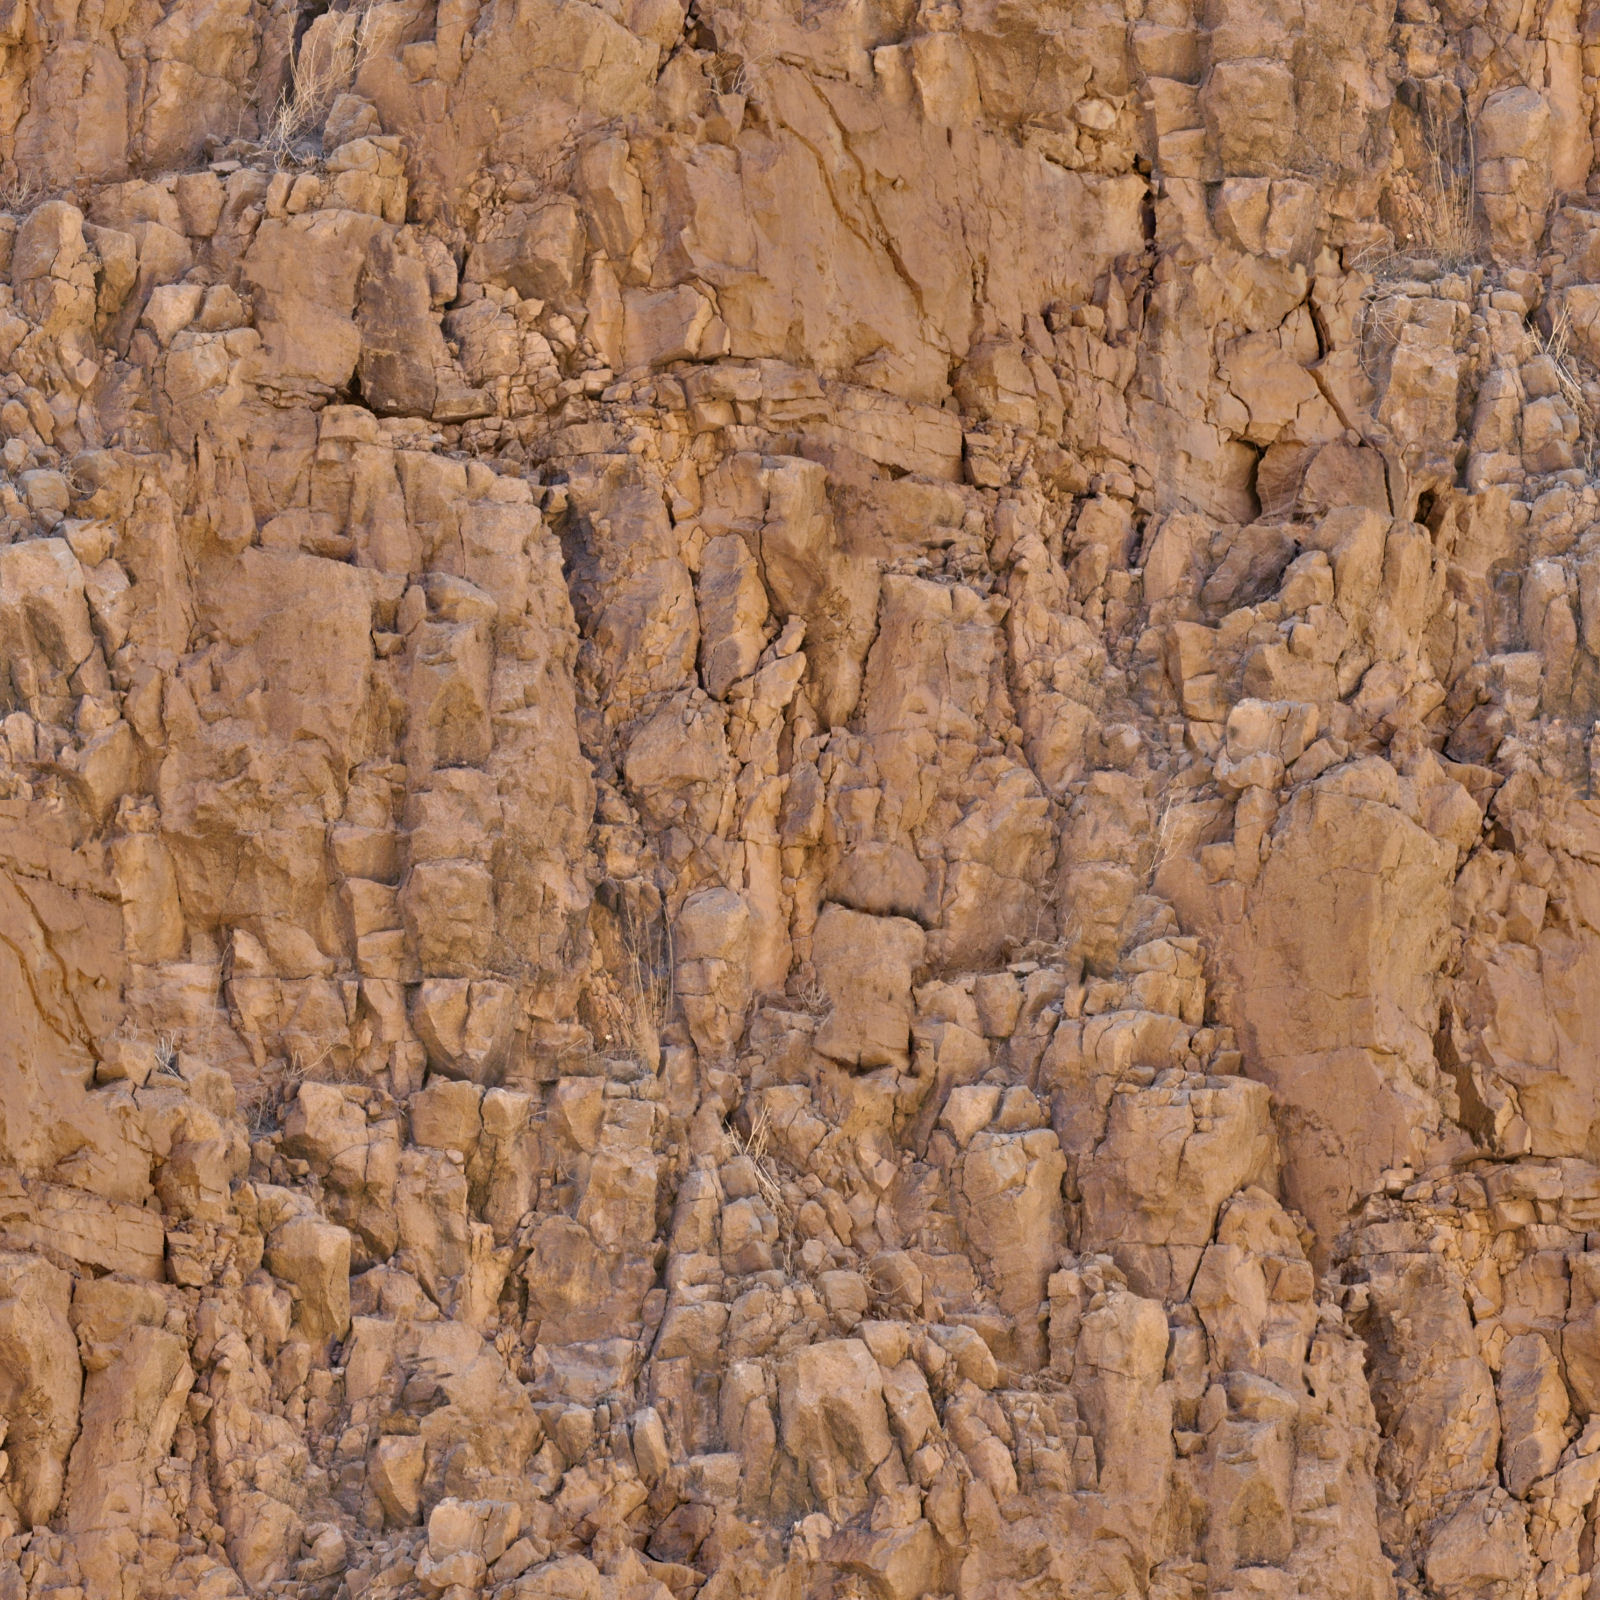 HIGH RESOLUTION TEXTURES: Seamless stone cliff face ...